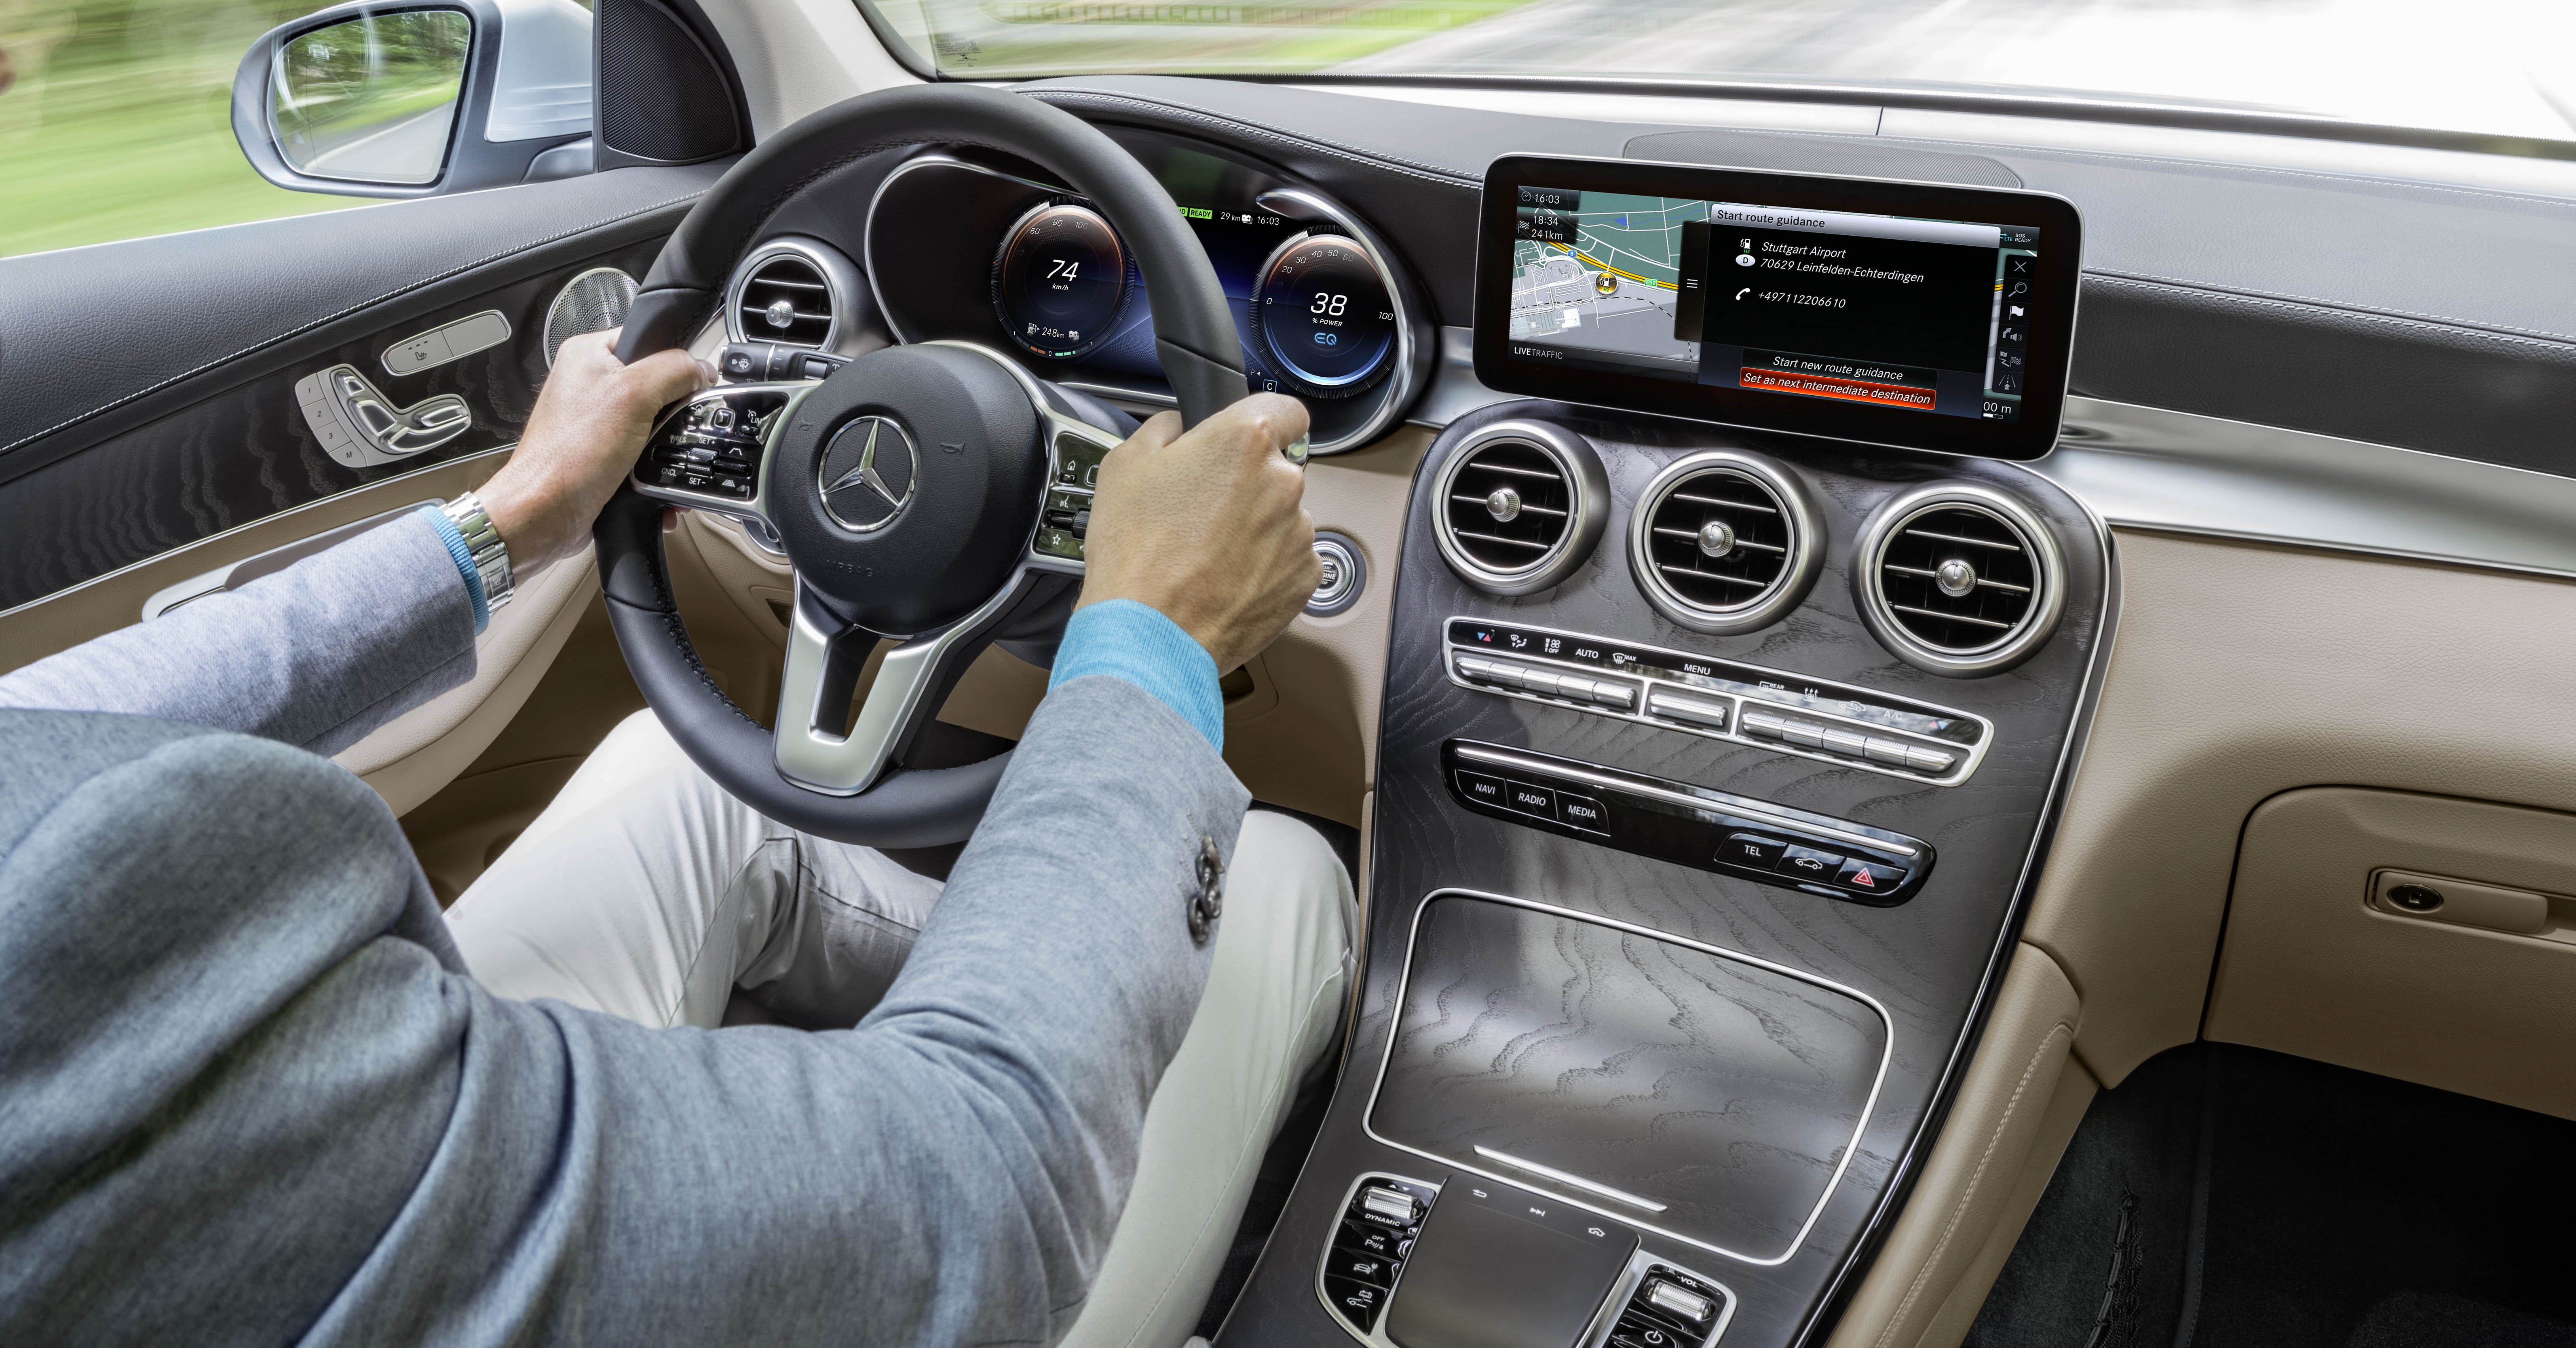 W205 Mercedes Benz C Class Facelift Interior Previewed By GLC F Cell?